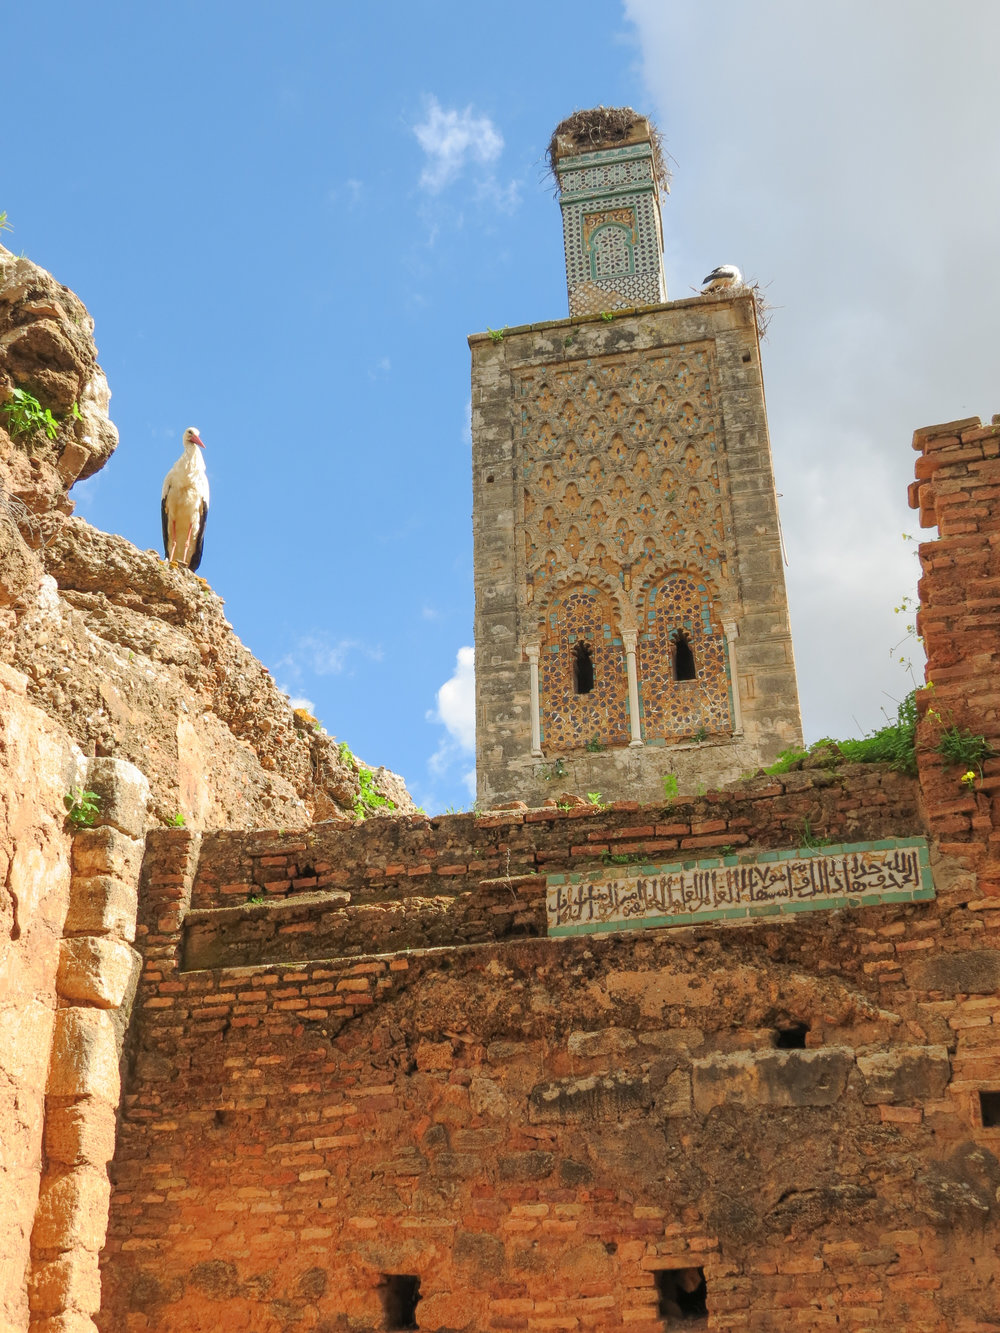 The minaret at Chellah is home to a large crane, which nests at the top of the ancient mosque.